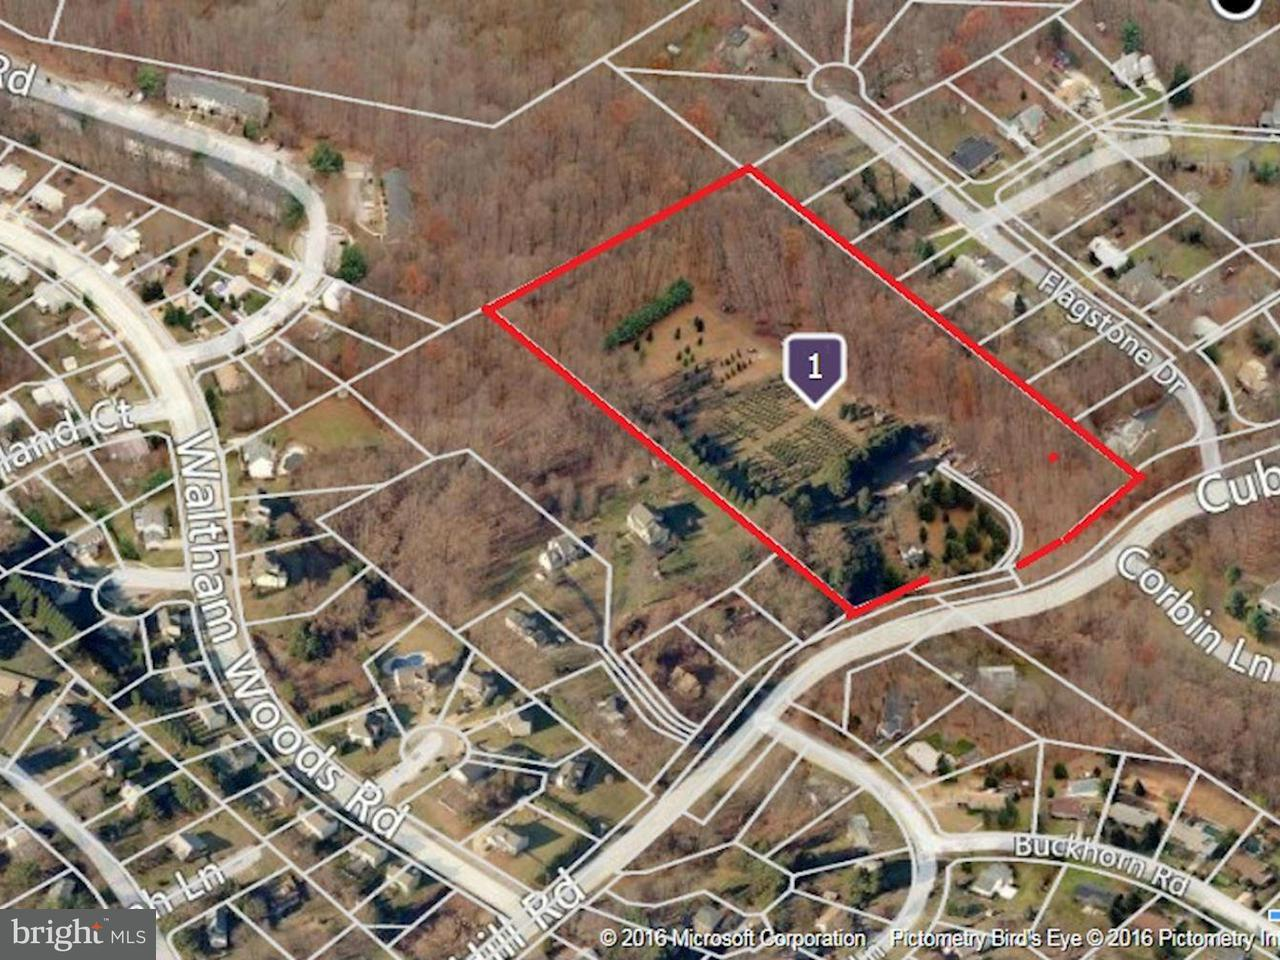 Land for Sale at 2509 CUB HILL Road 2509 CUB HILL Road Parkville, Maryland 21234 United States